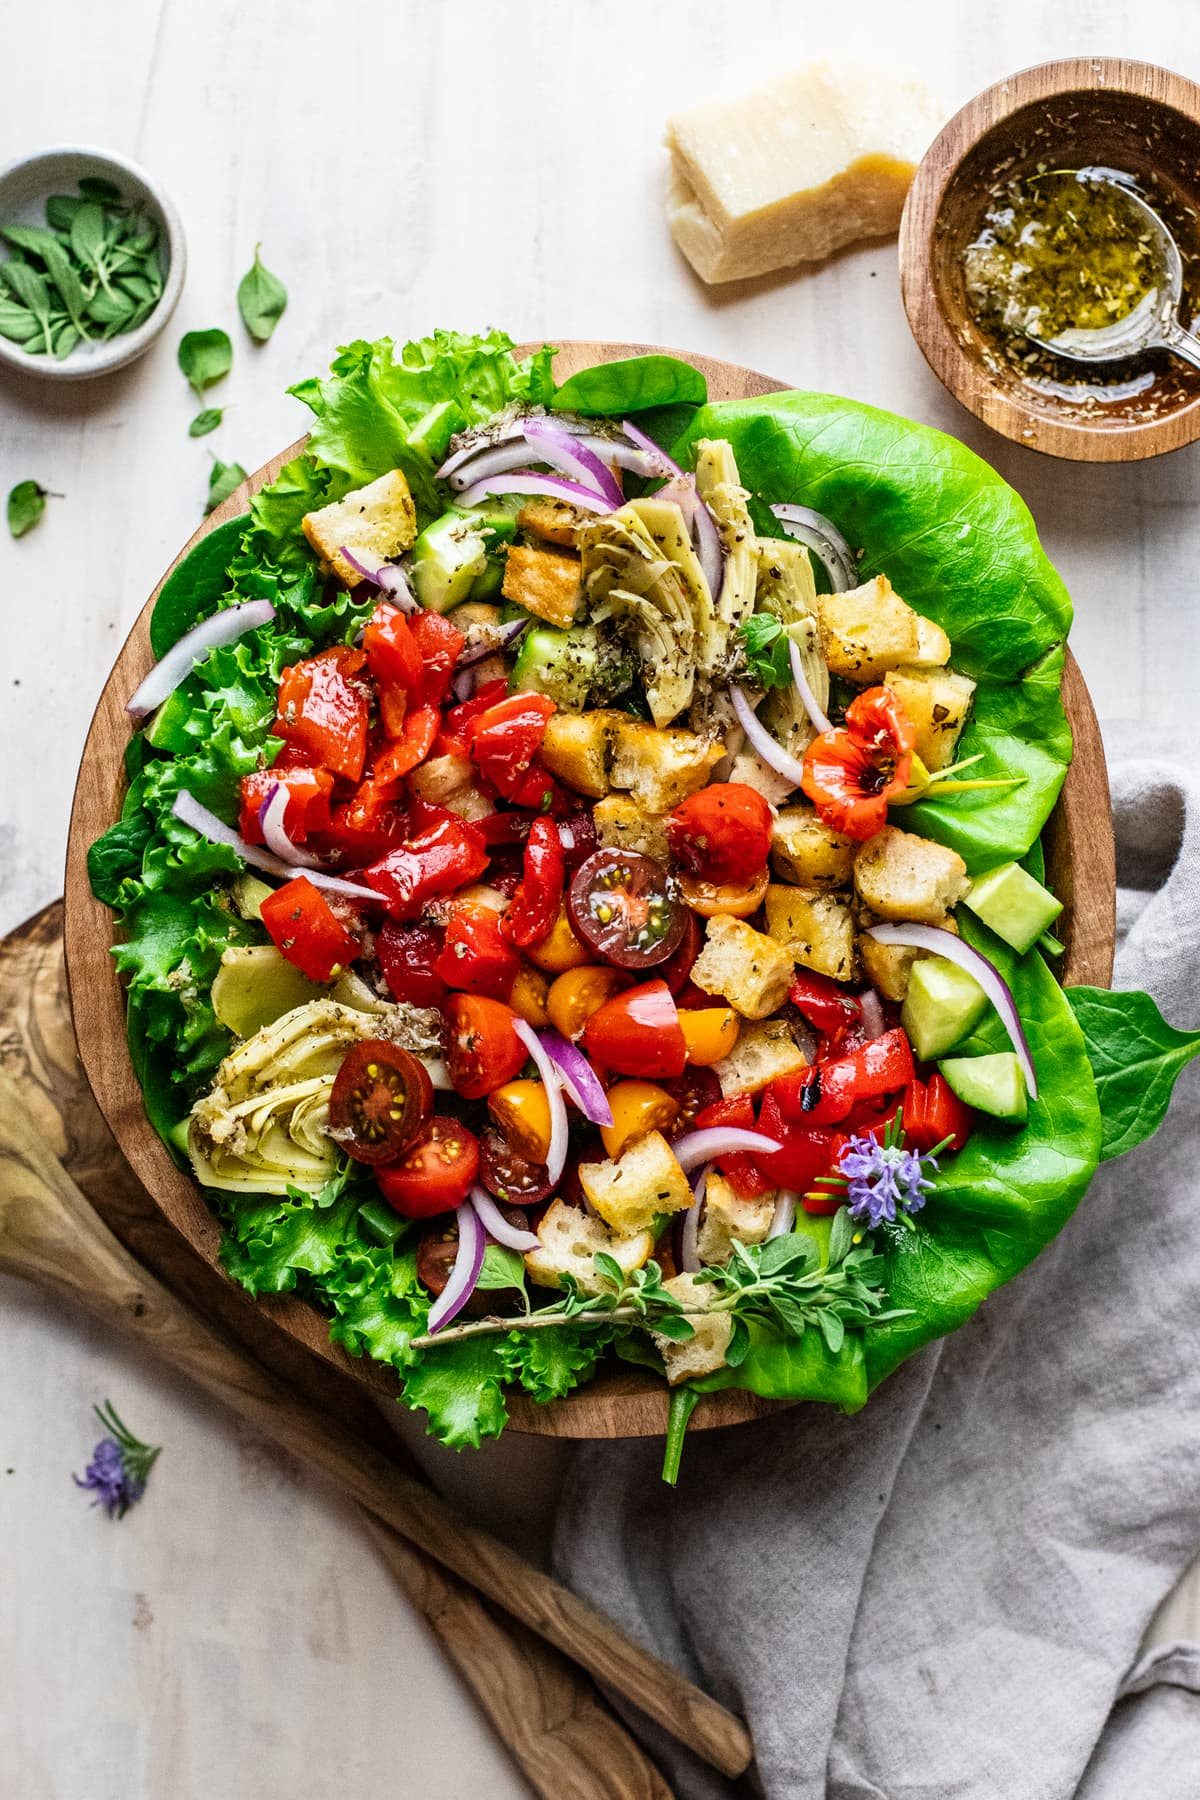 wooden bowl with italian salad and greens in it with wooden spoons and gray napkin next to it.